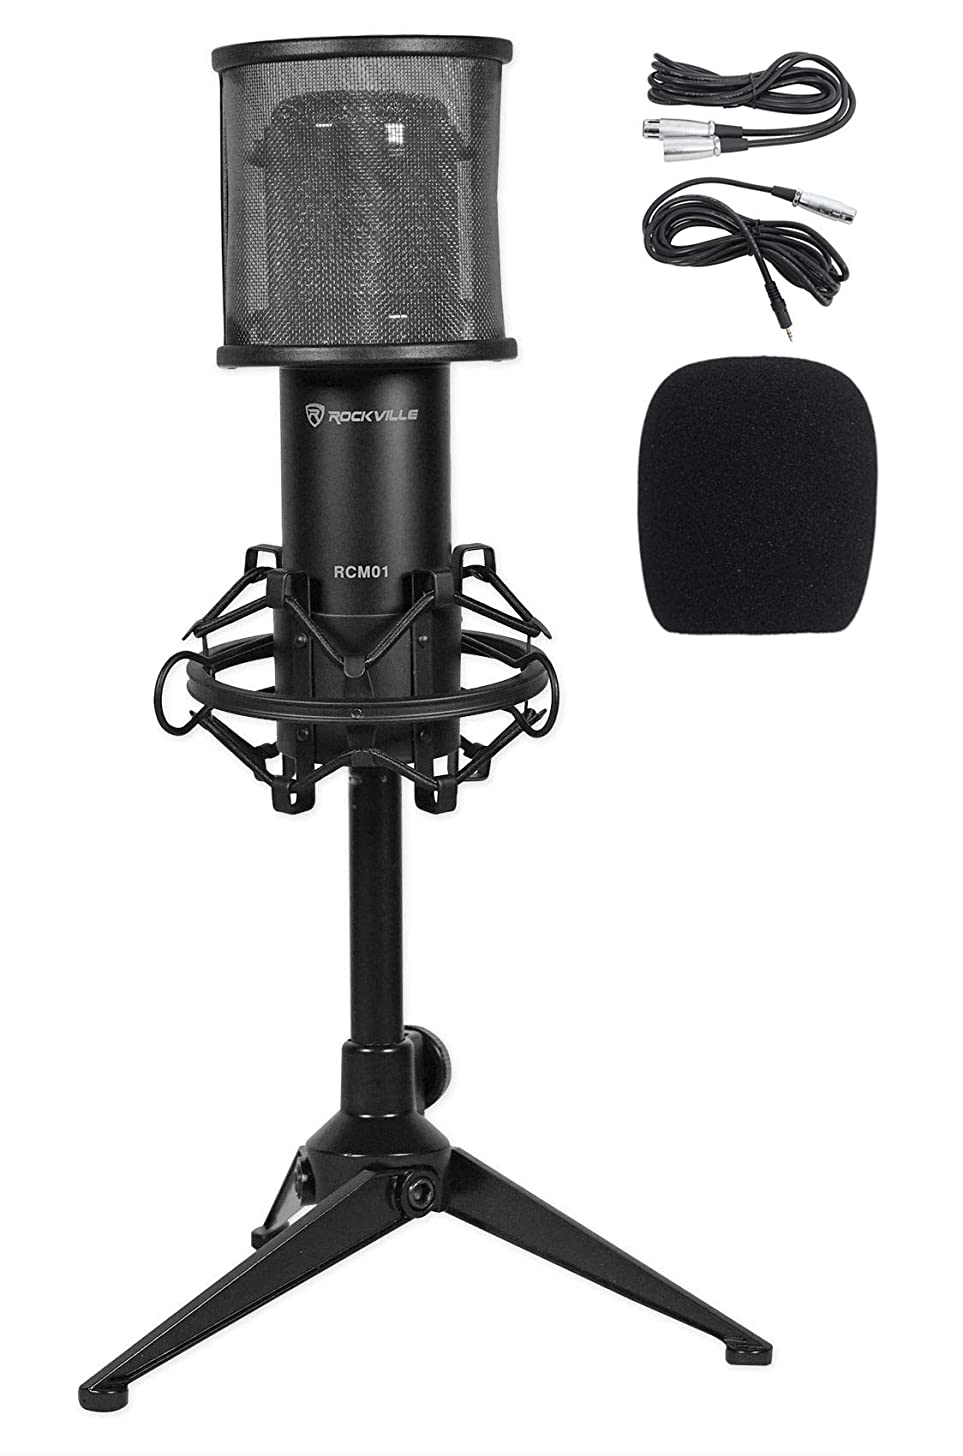 Rockville RCM01 PC Gaming Twitch Stream Microphone Mic+Shock Mount+Desk Stand